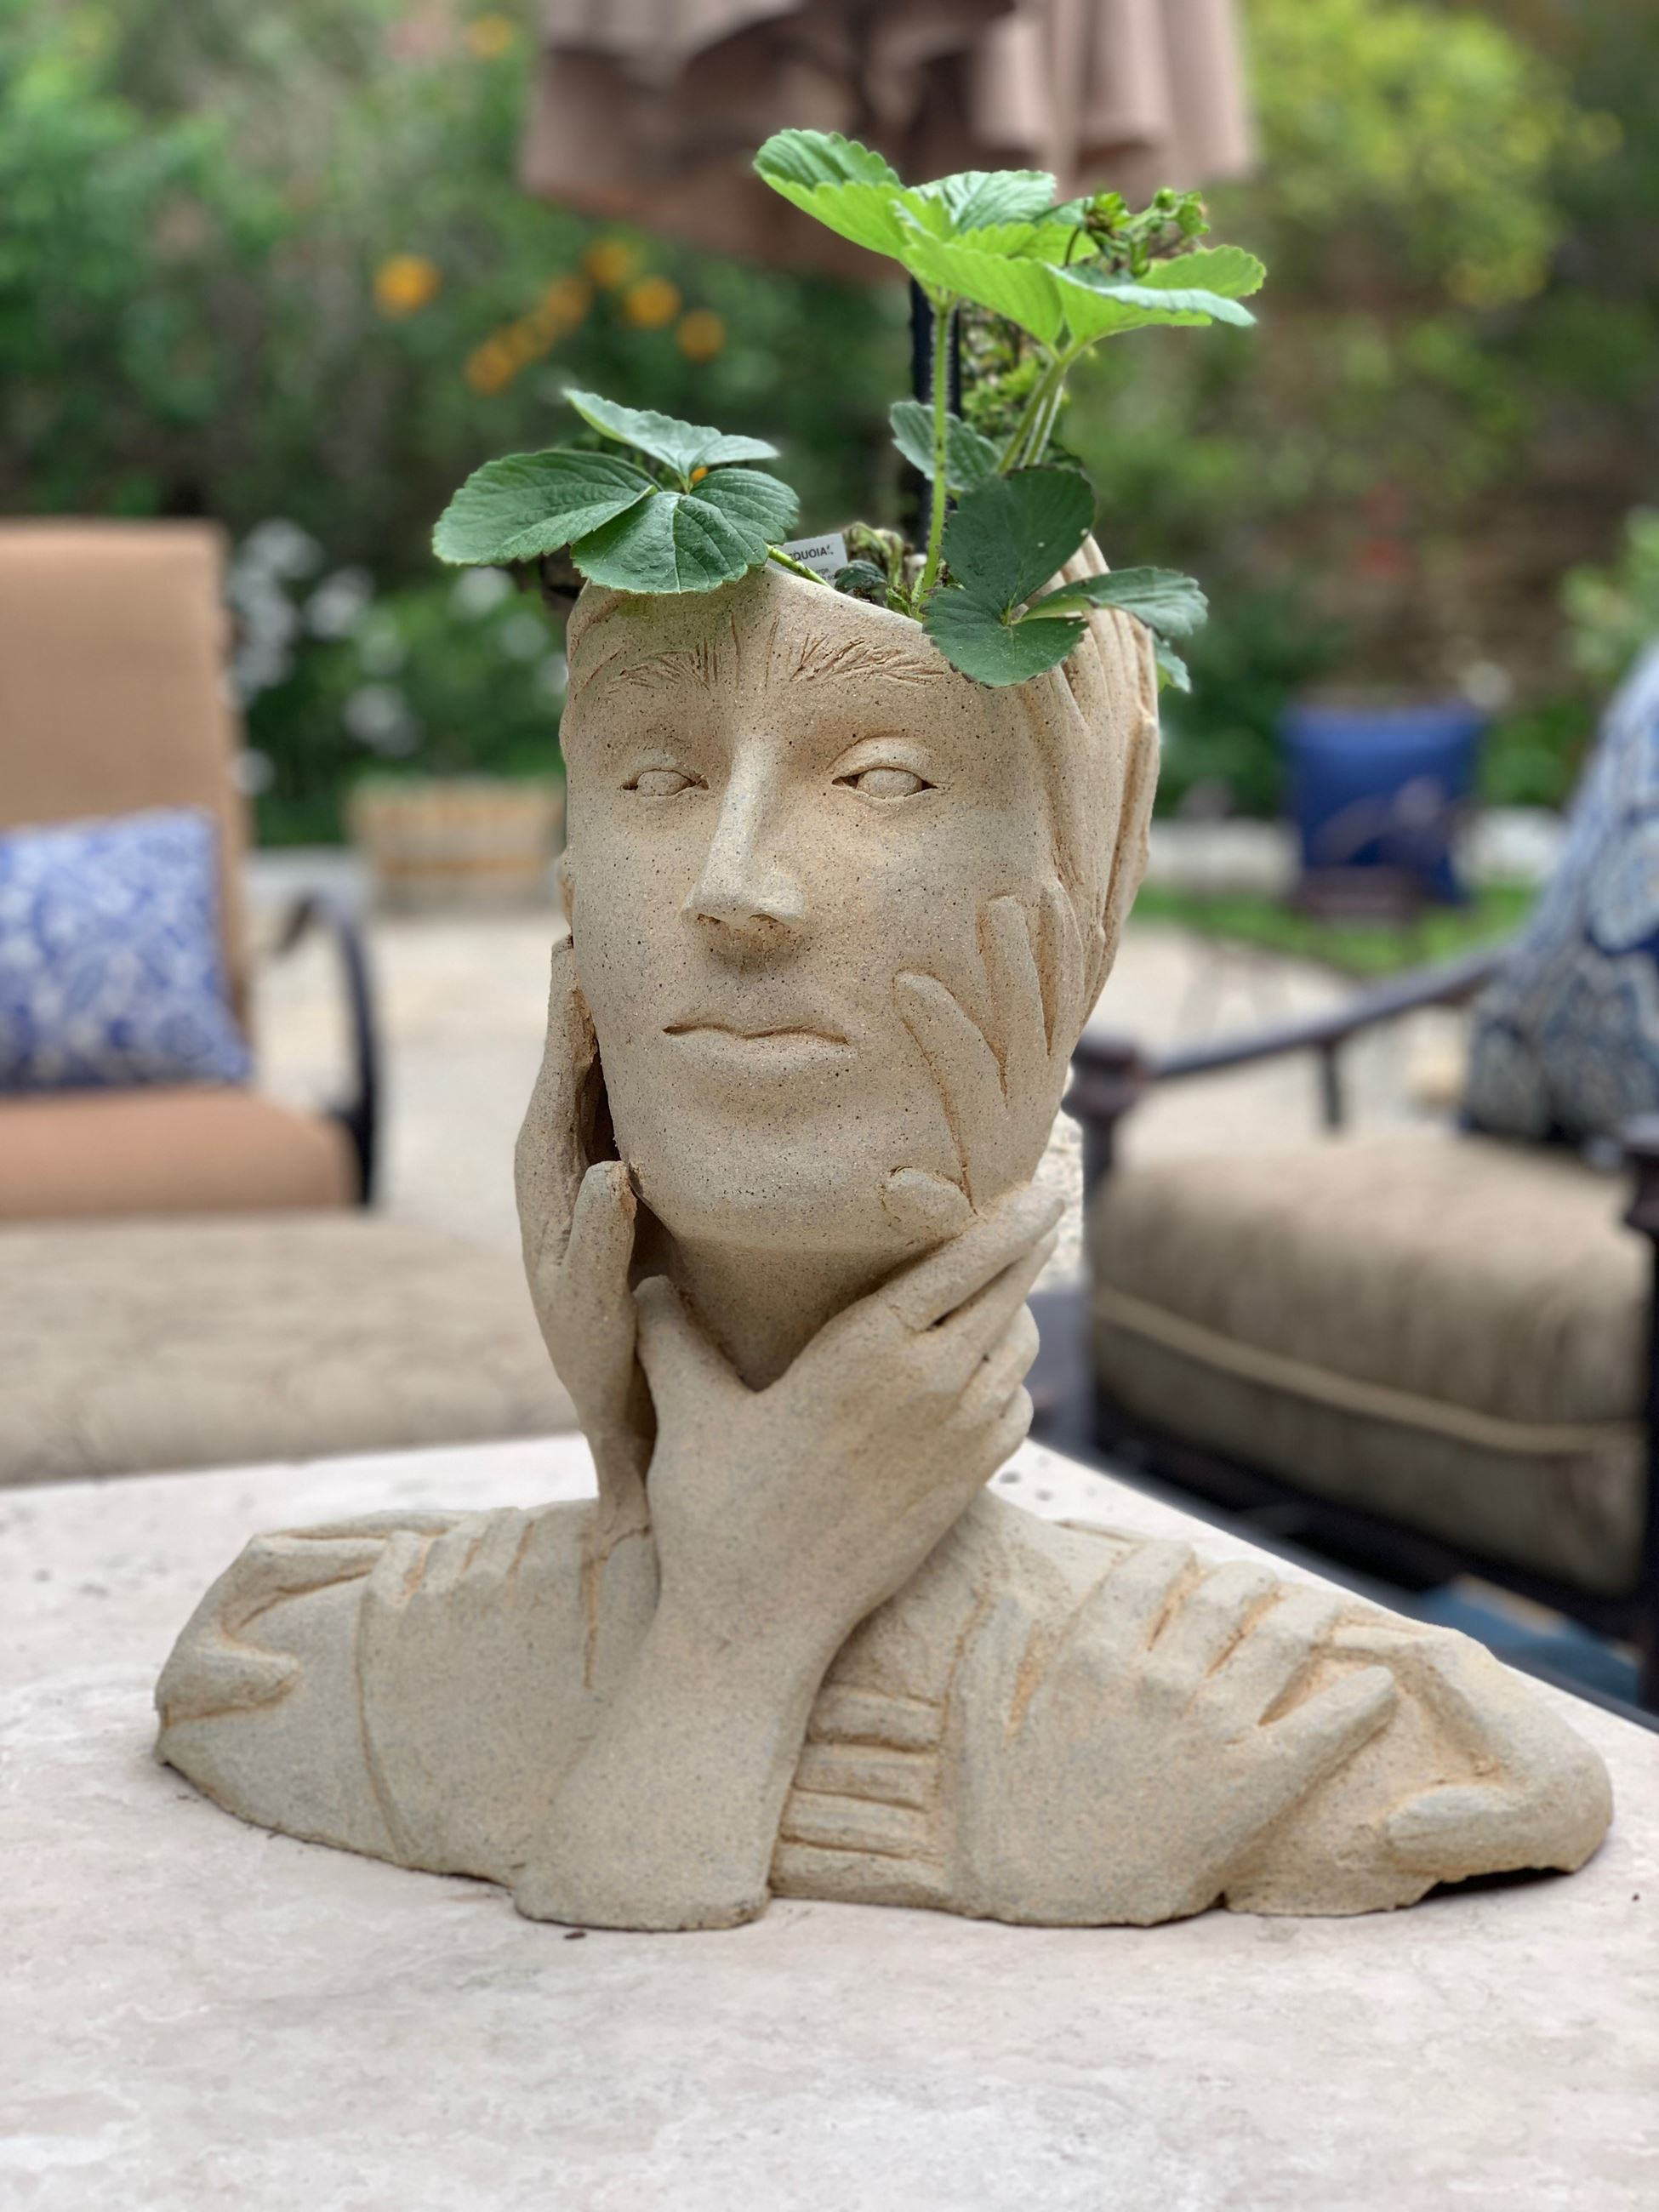 A sculpted bust of a woman with a plant growing out of her head.